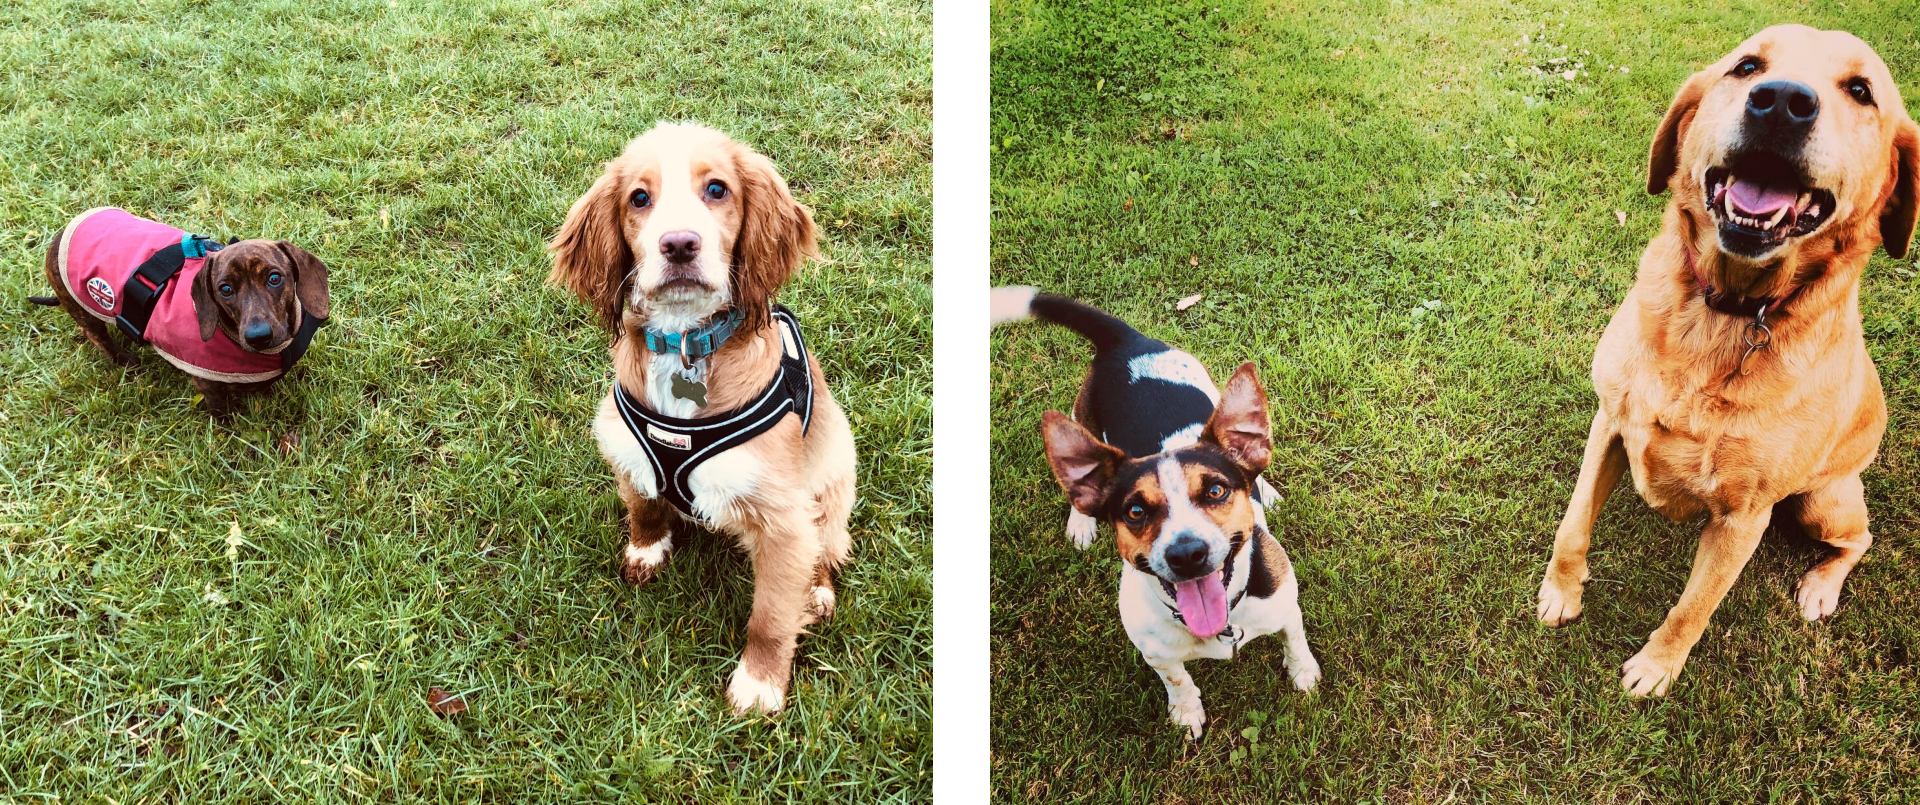 Waggy Tails of Wymondham: Dave & Trixi and Dot & Toast